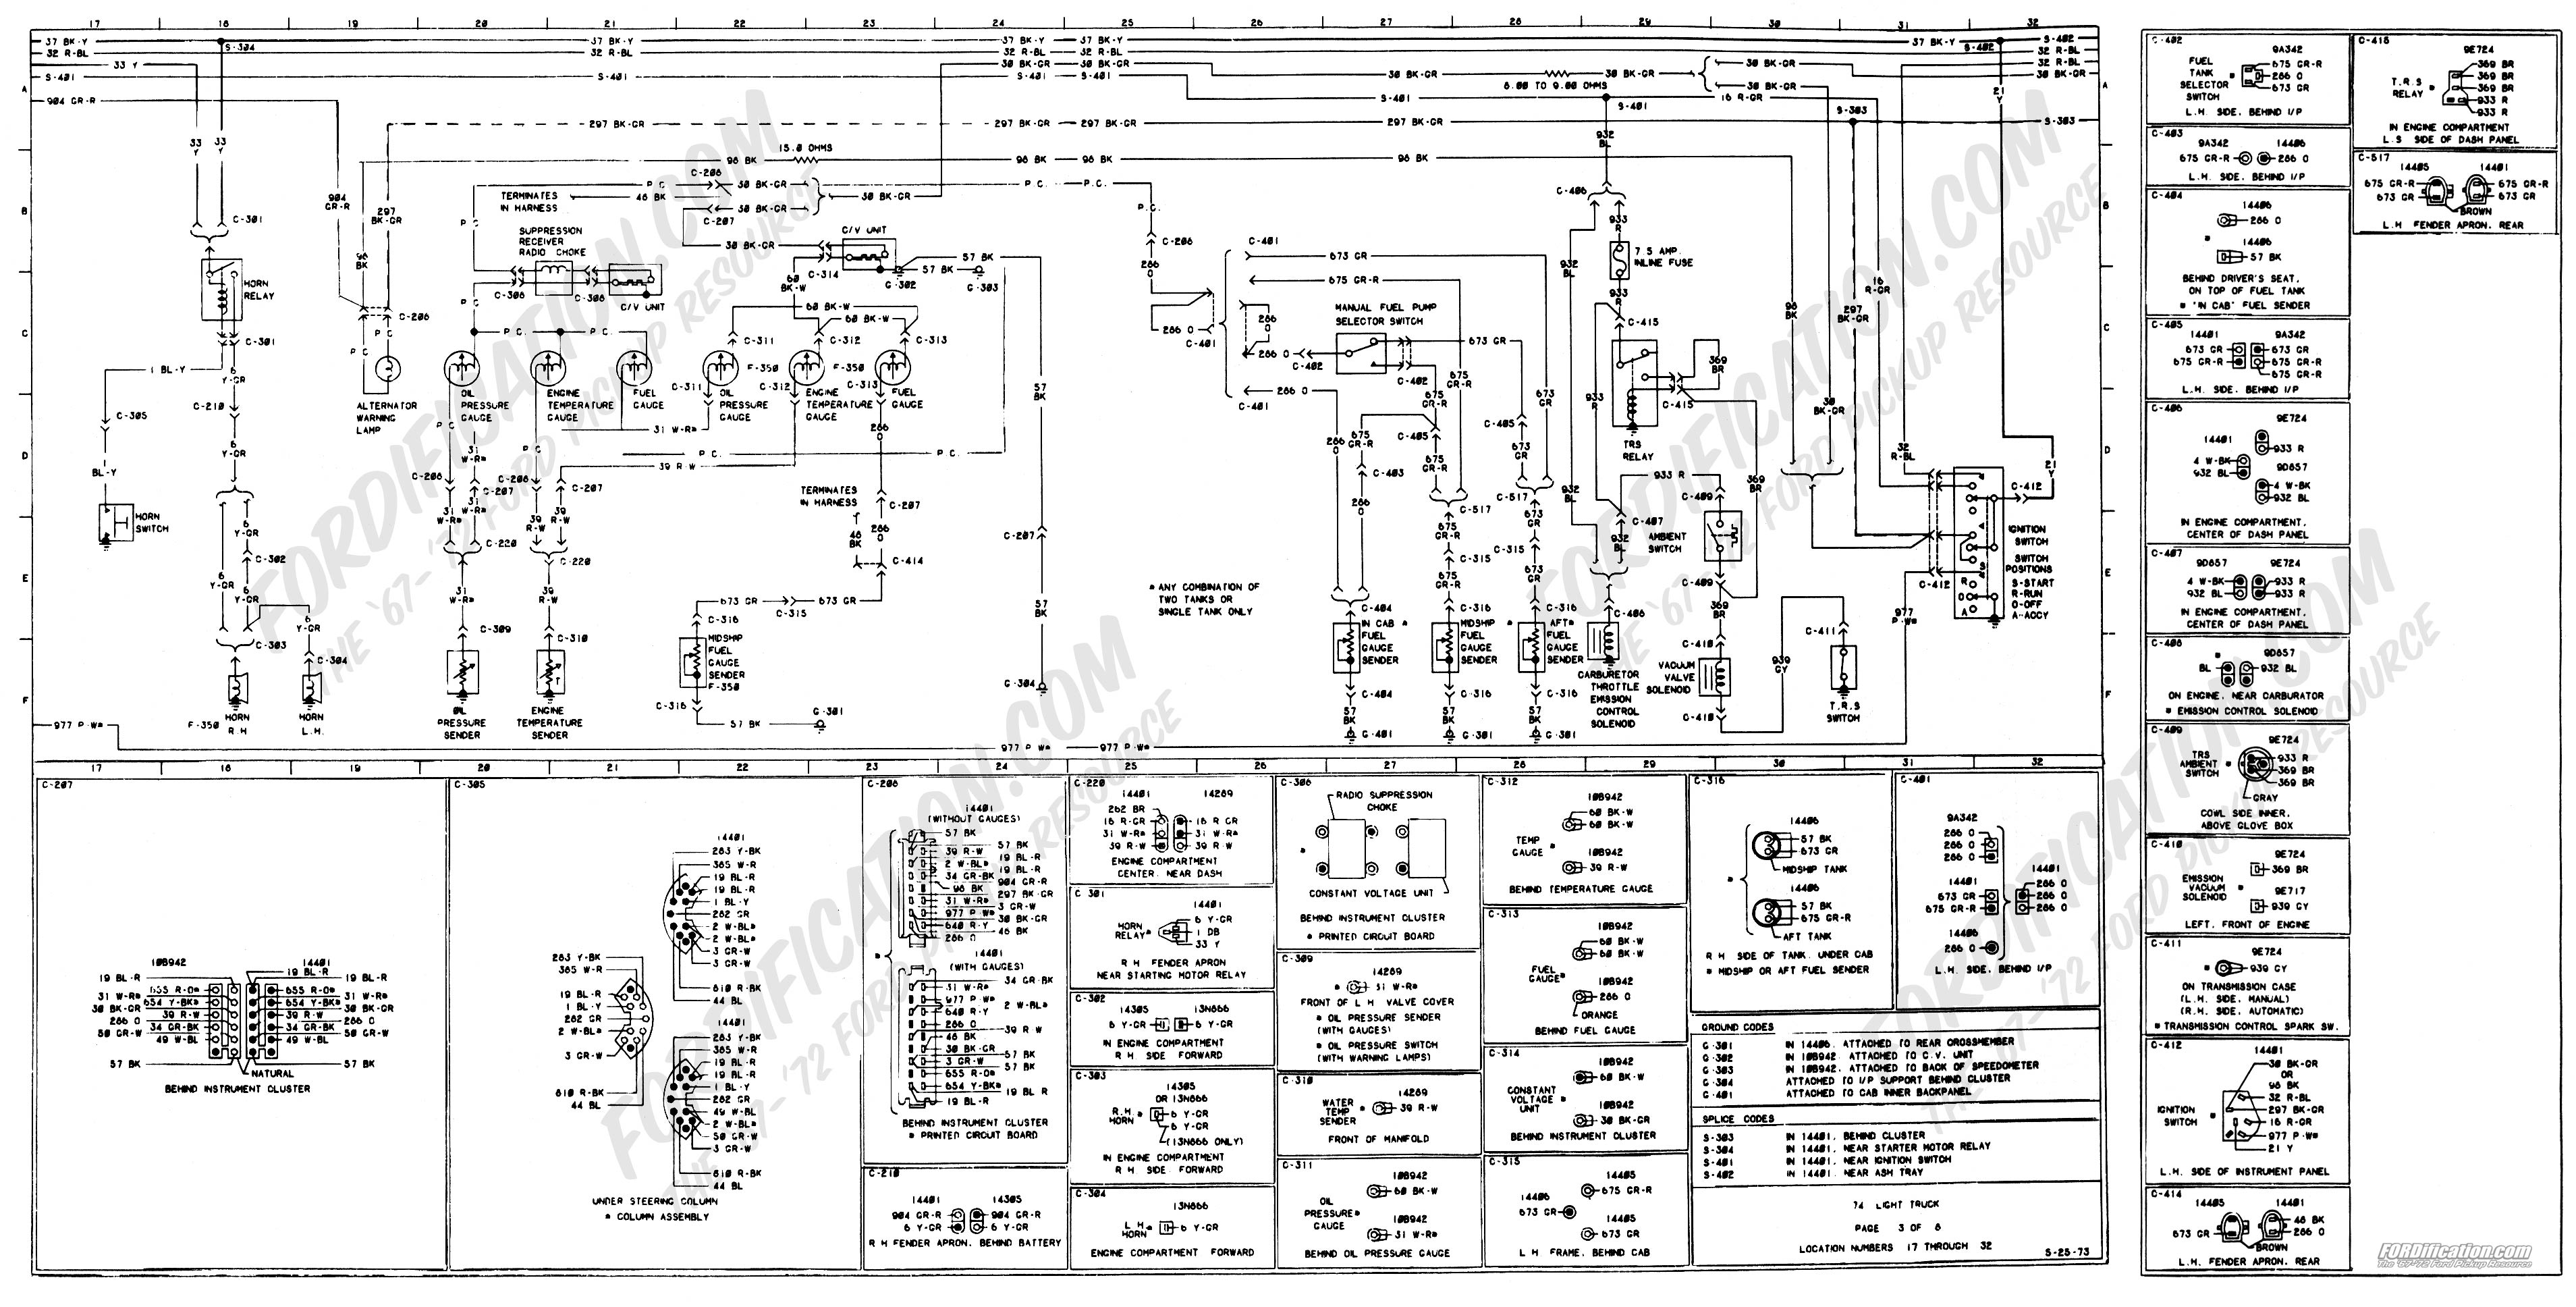 wiring_74master_3of8 1973 1979 ford truck wiring diagrams & schematics fordification net 03 f350 wiring diagram at crackthecode.co